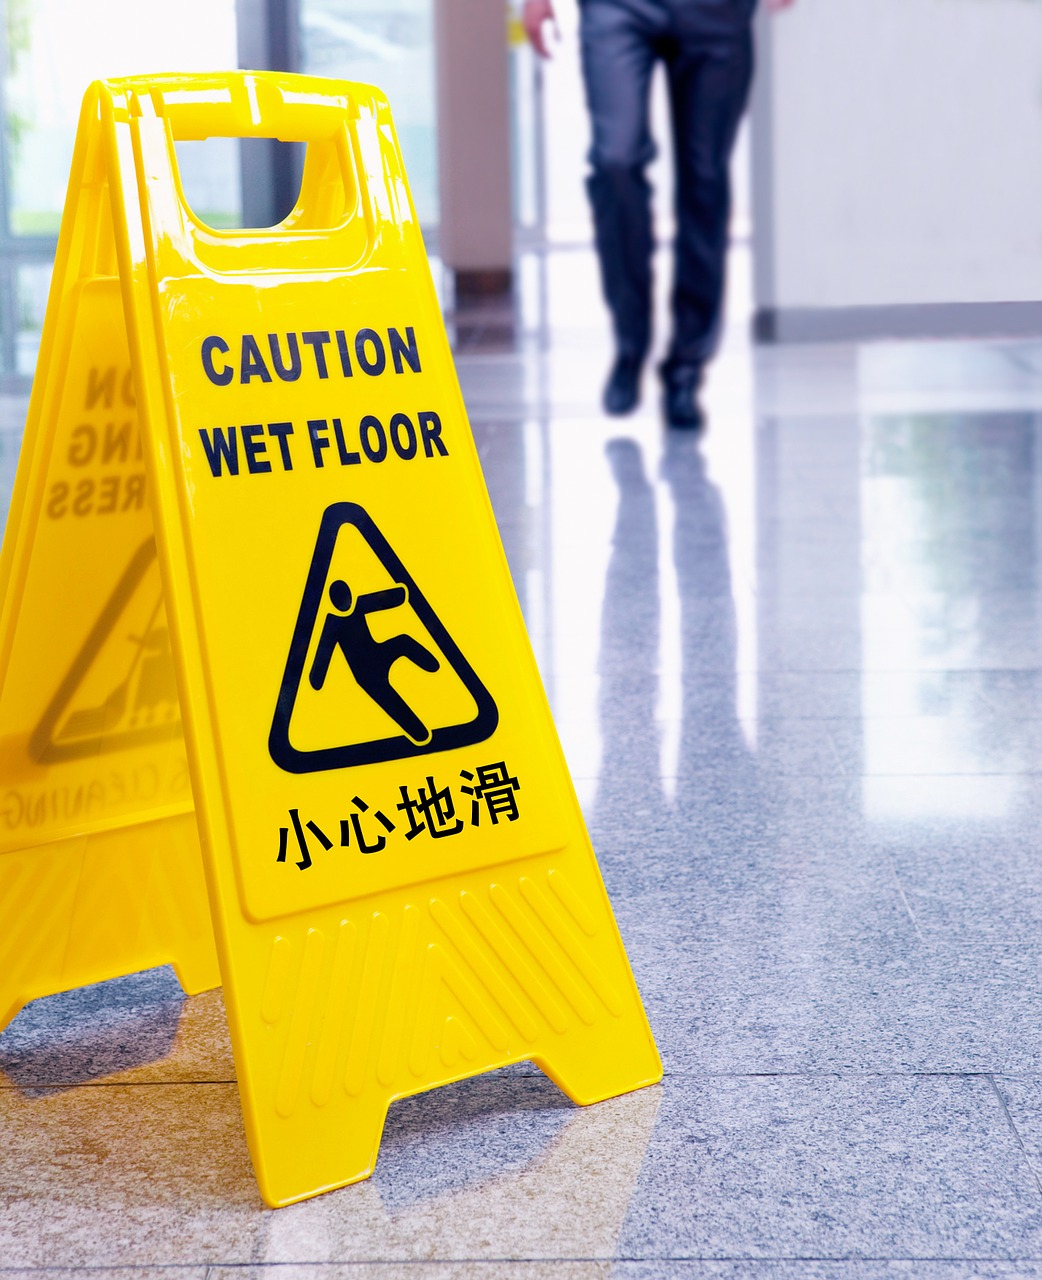 Don't let your slip and fall slip away. Call ADV MED HELP Today and let us get you the medical and legal help you need.